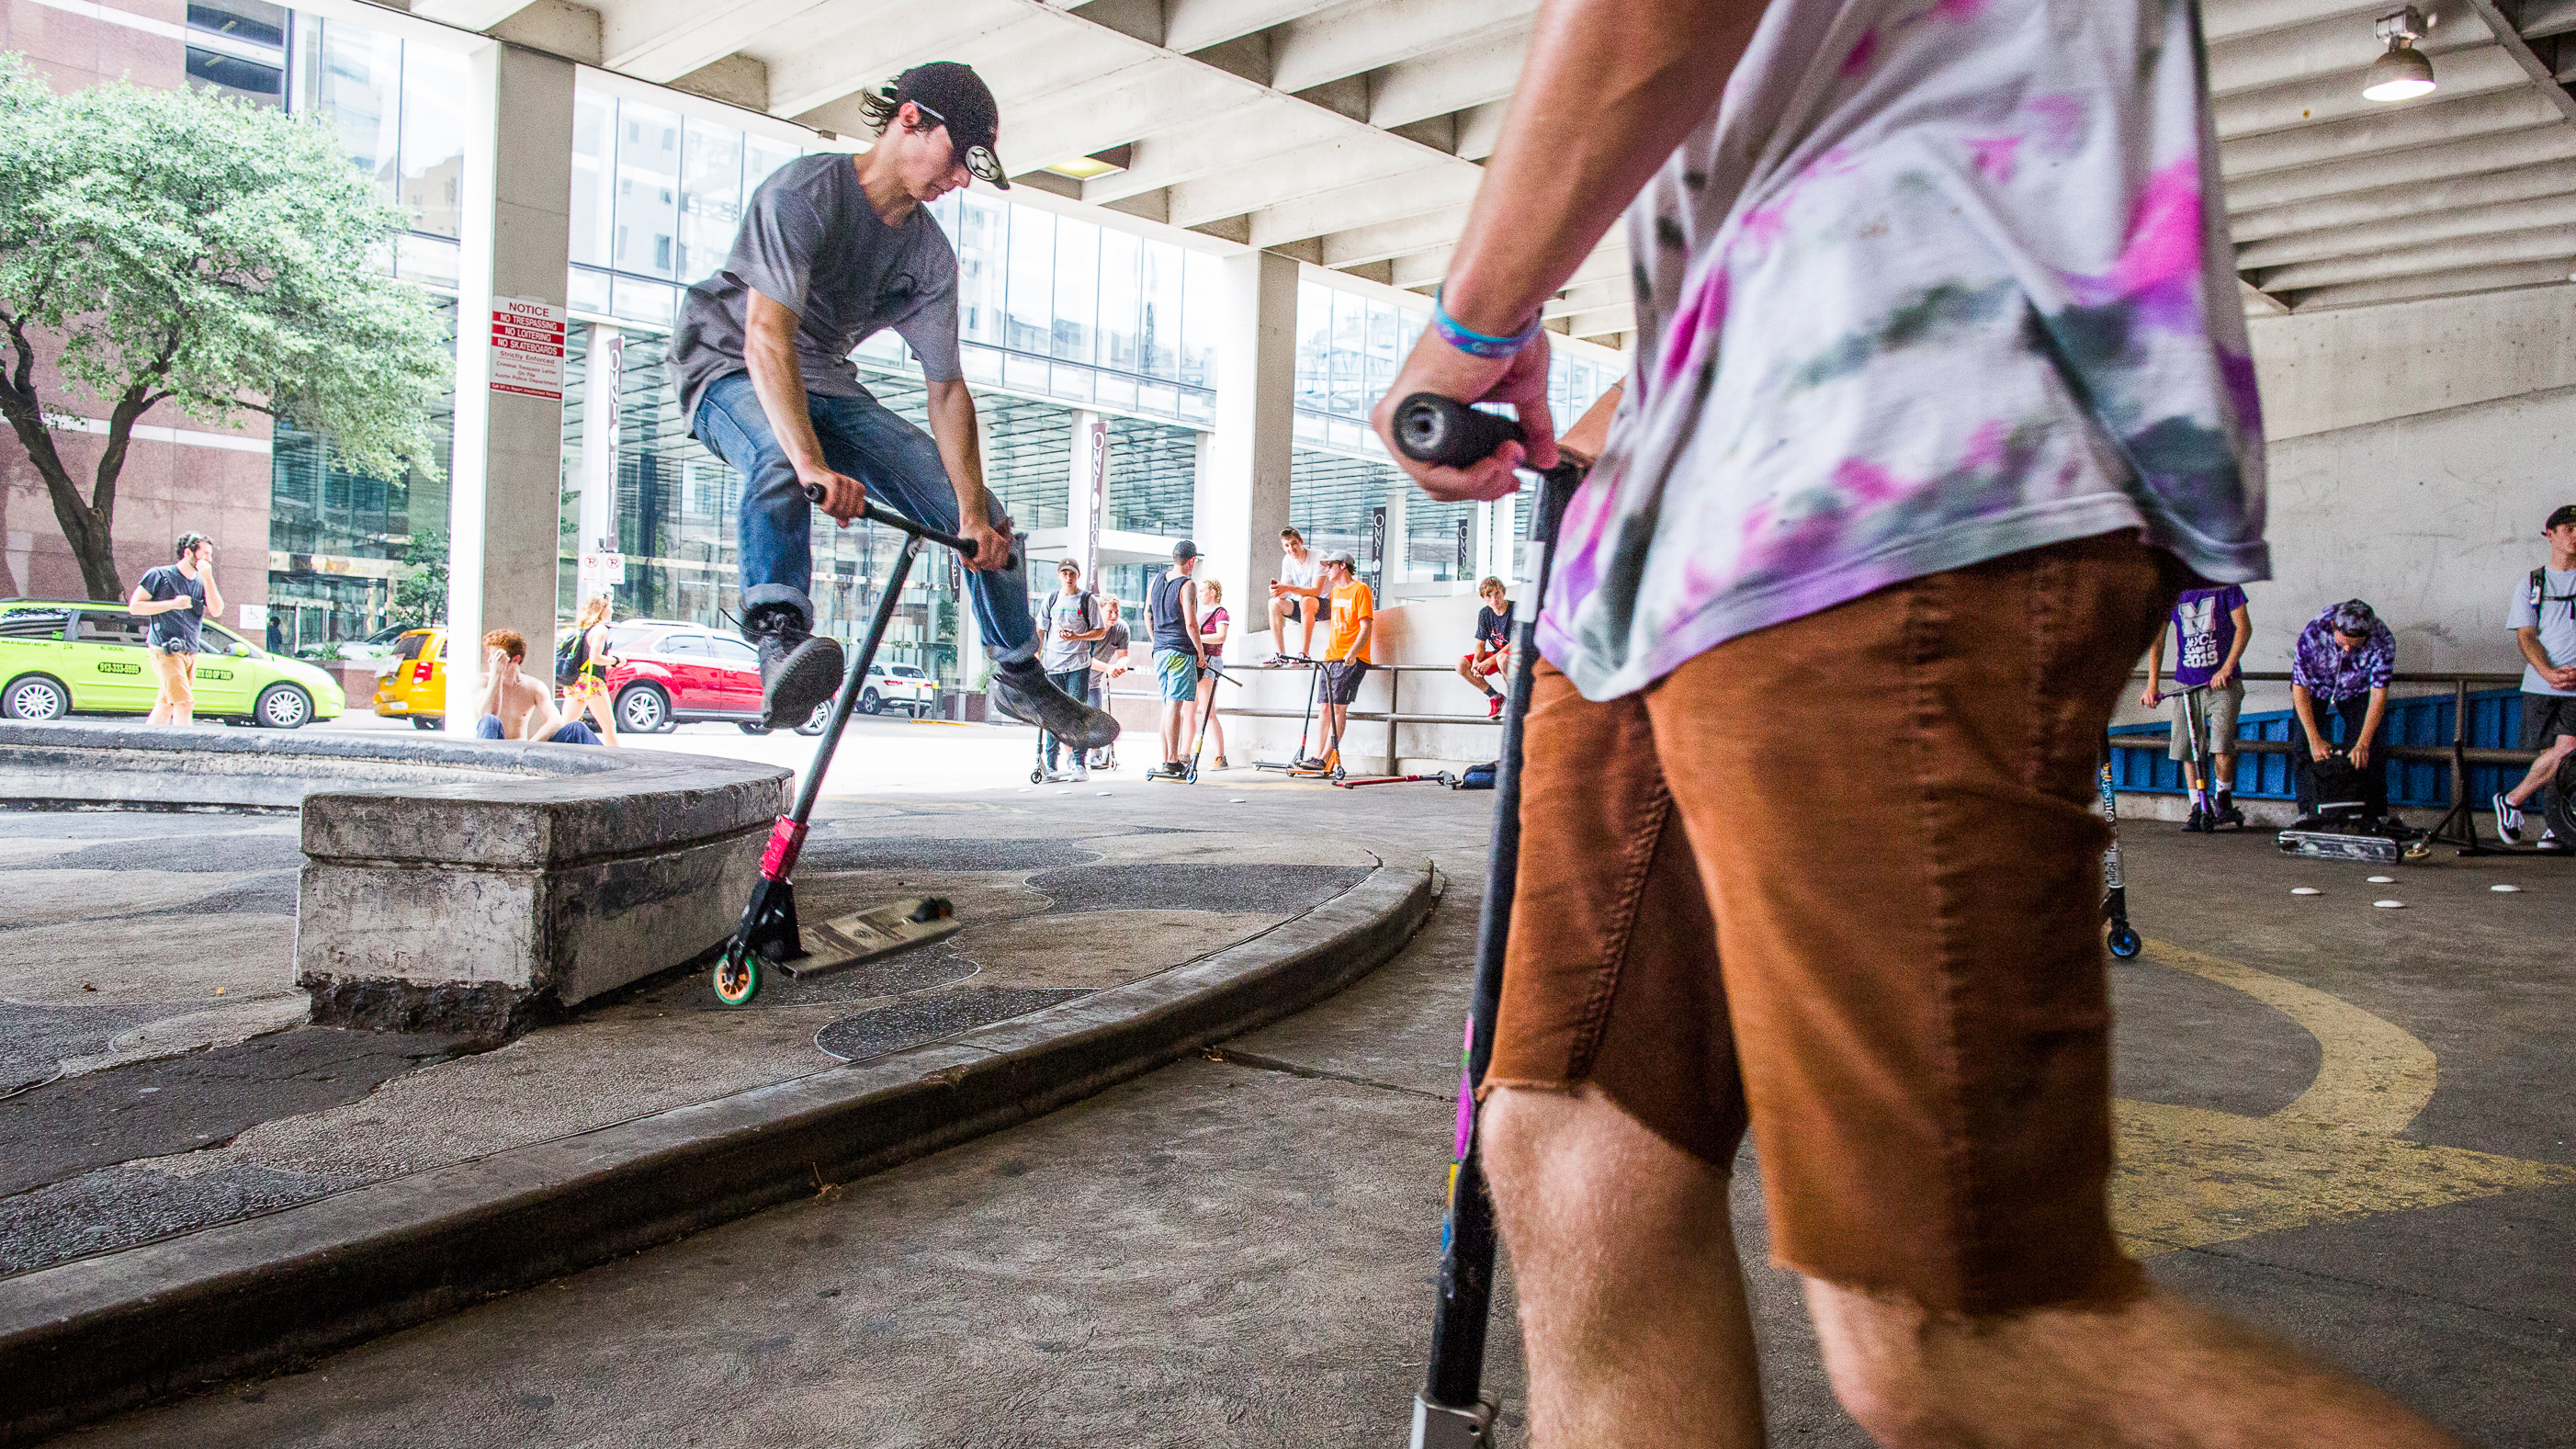 From Toy To Thrash How Scooters Are Becoming Millennials Extreme Sport Of Choice